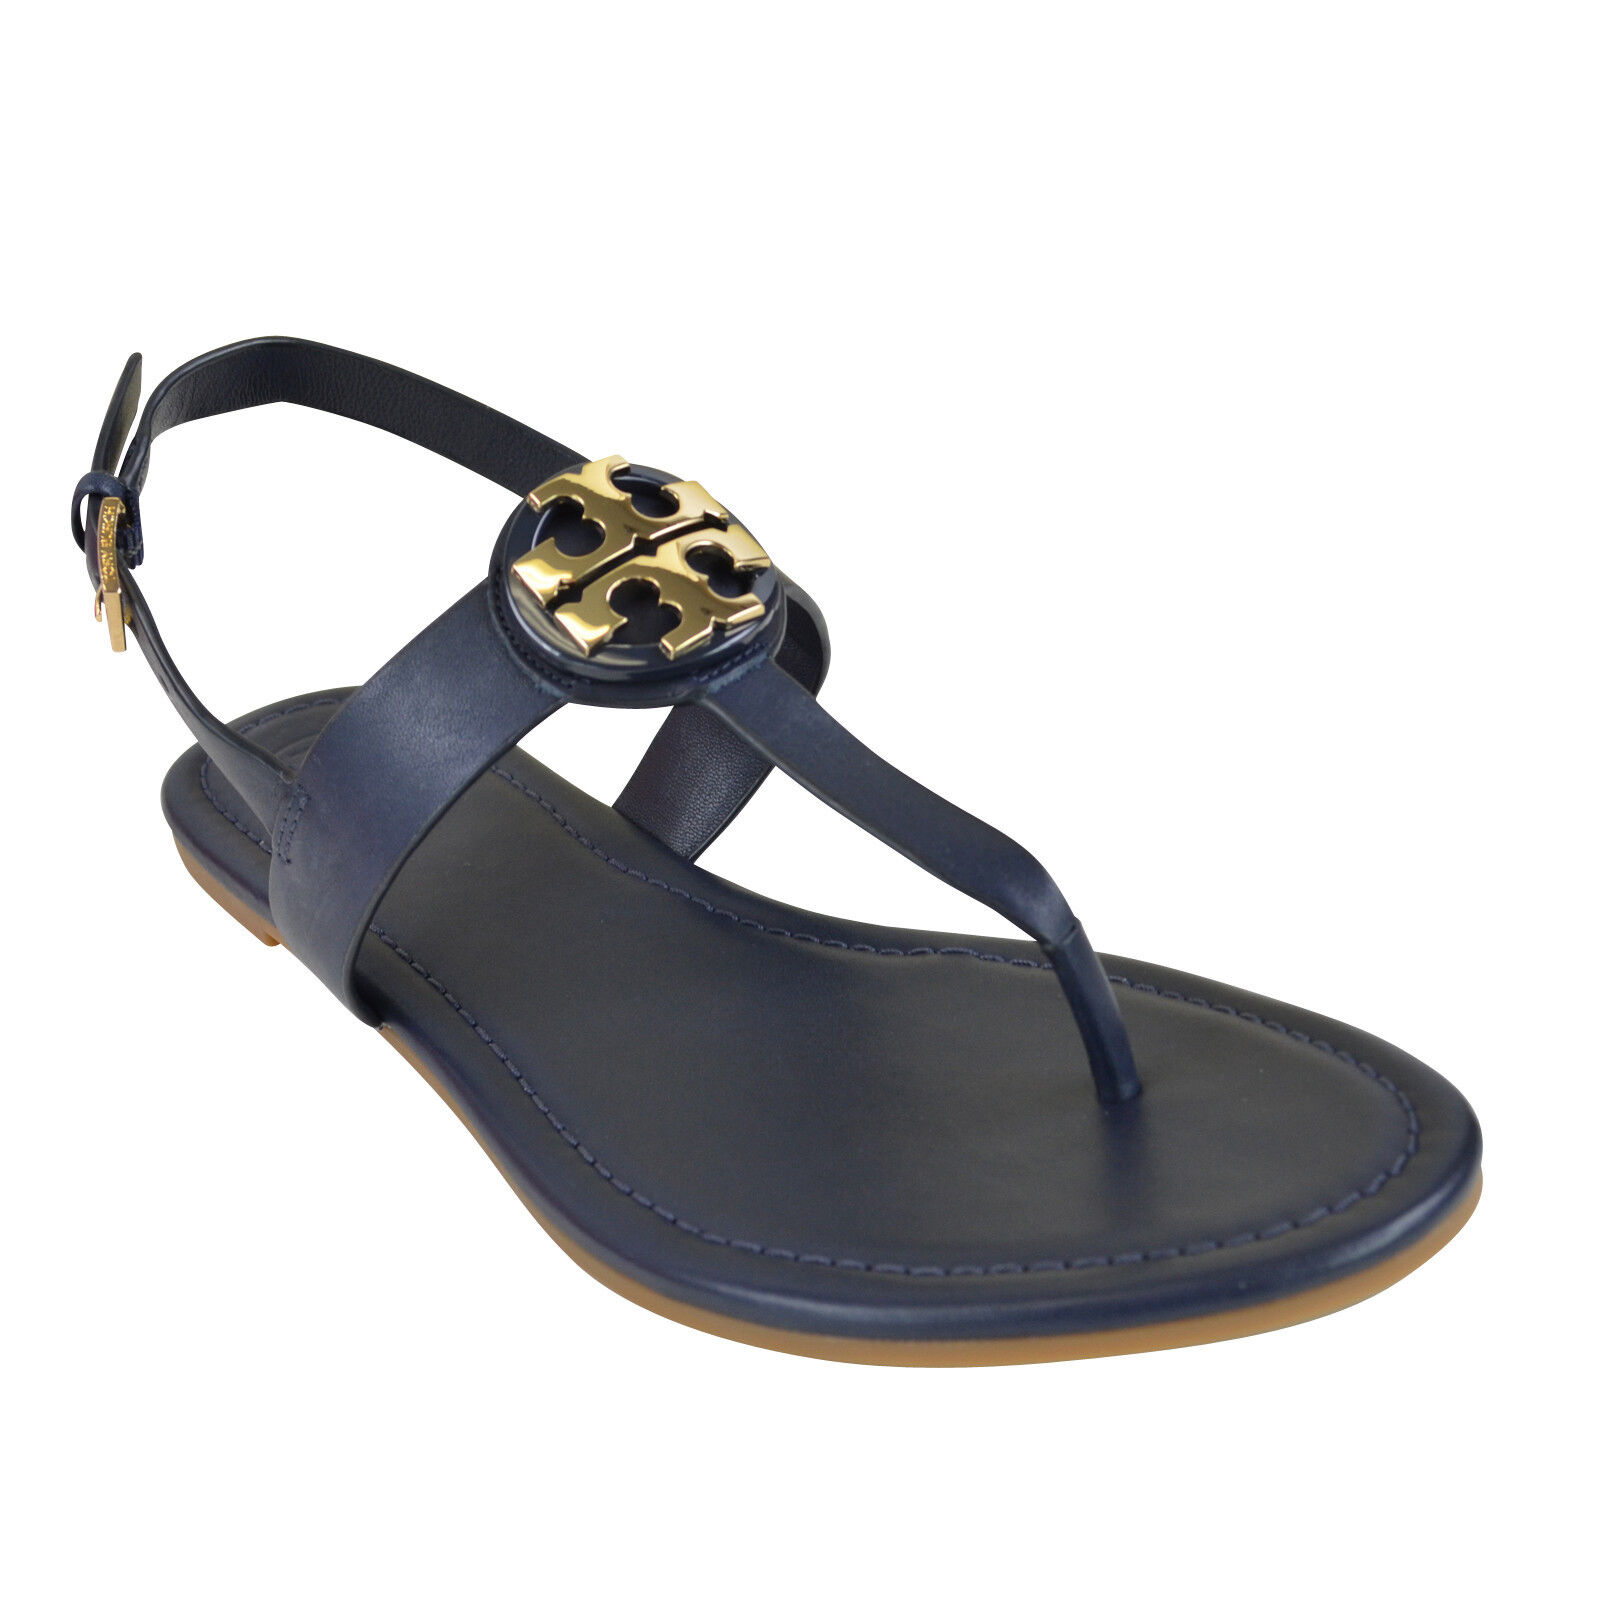 83f318aef294 Details about NIB Tory Burch Bryce Vegan Leather Sandal in Bright Navy